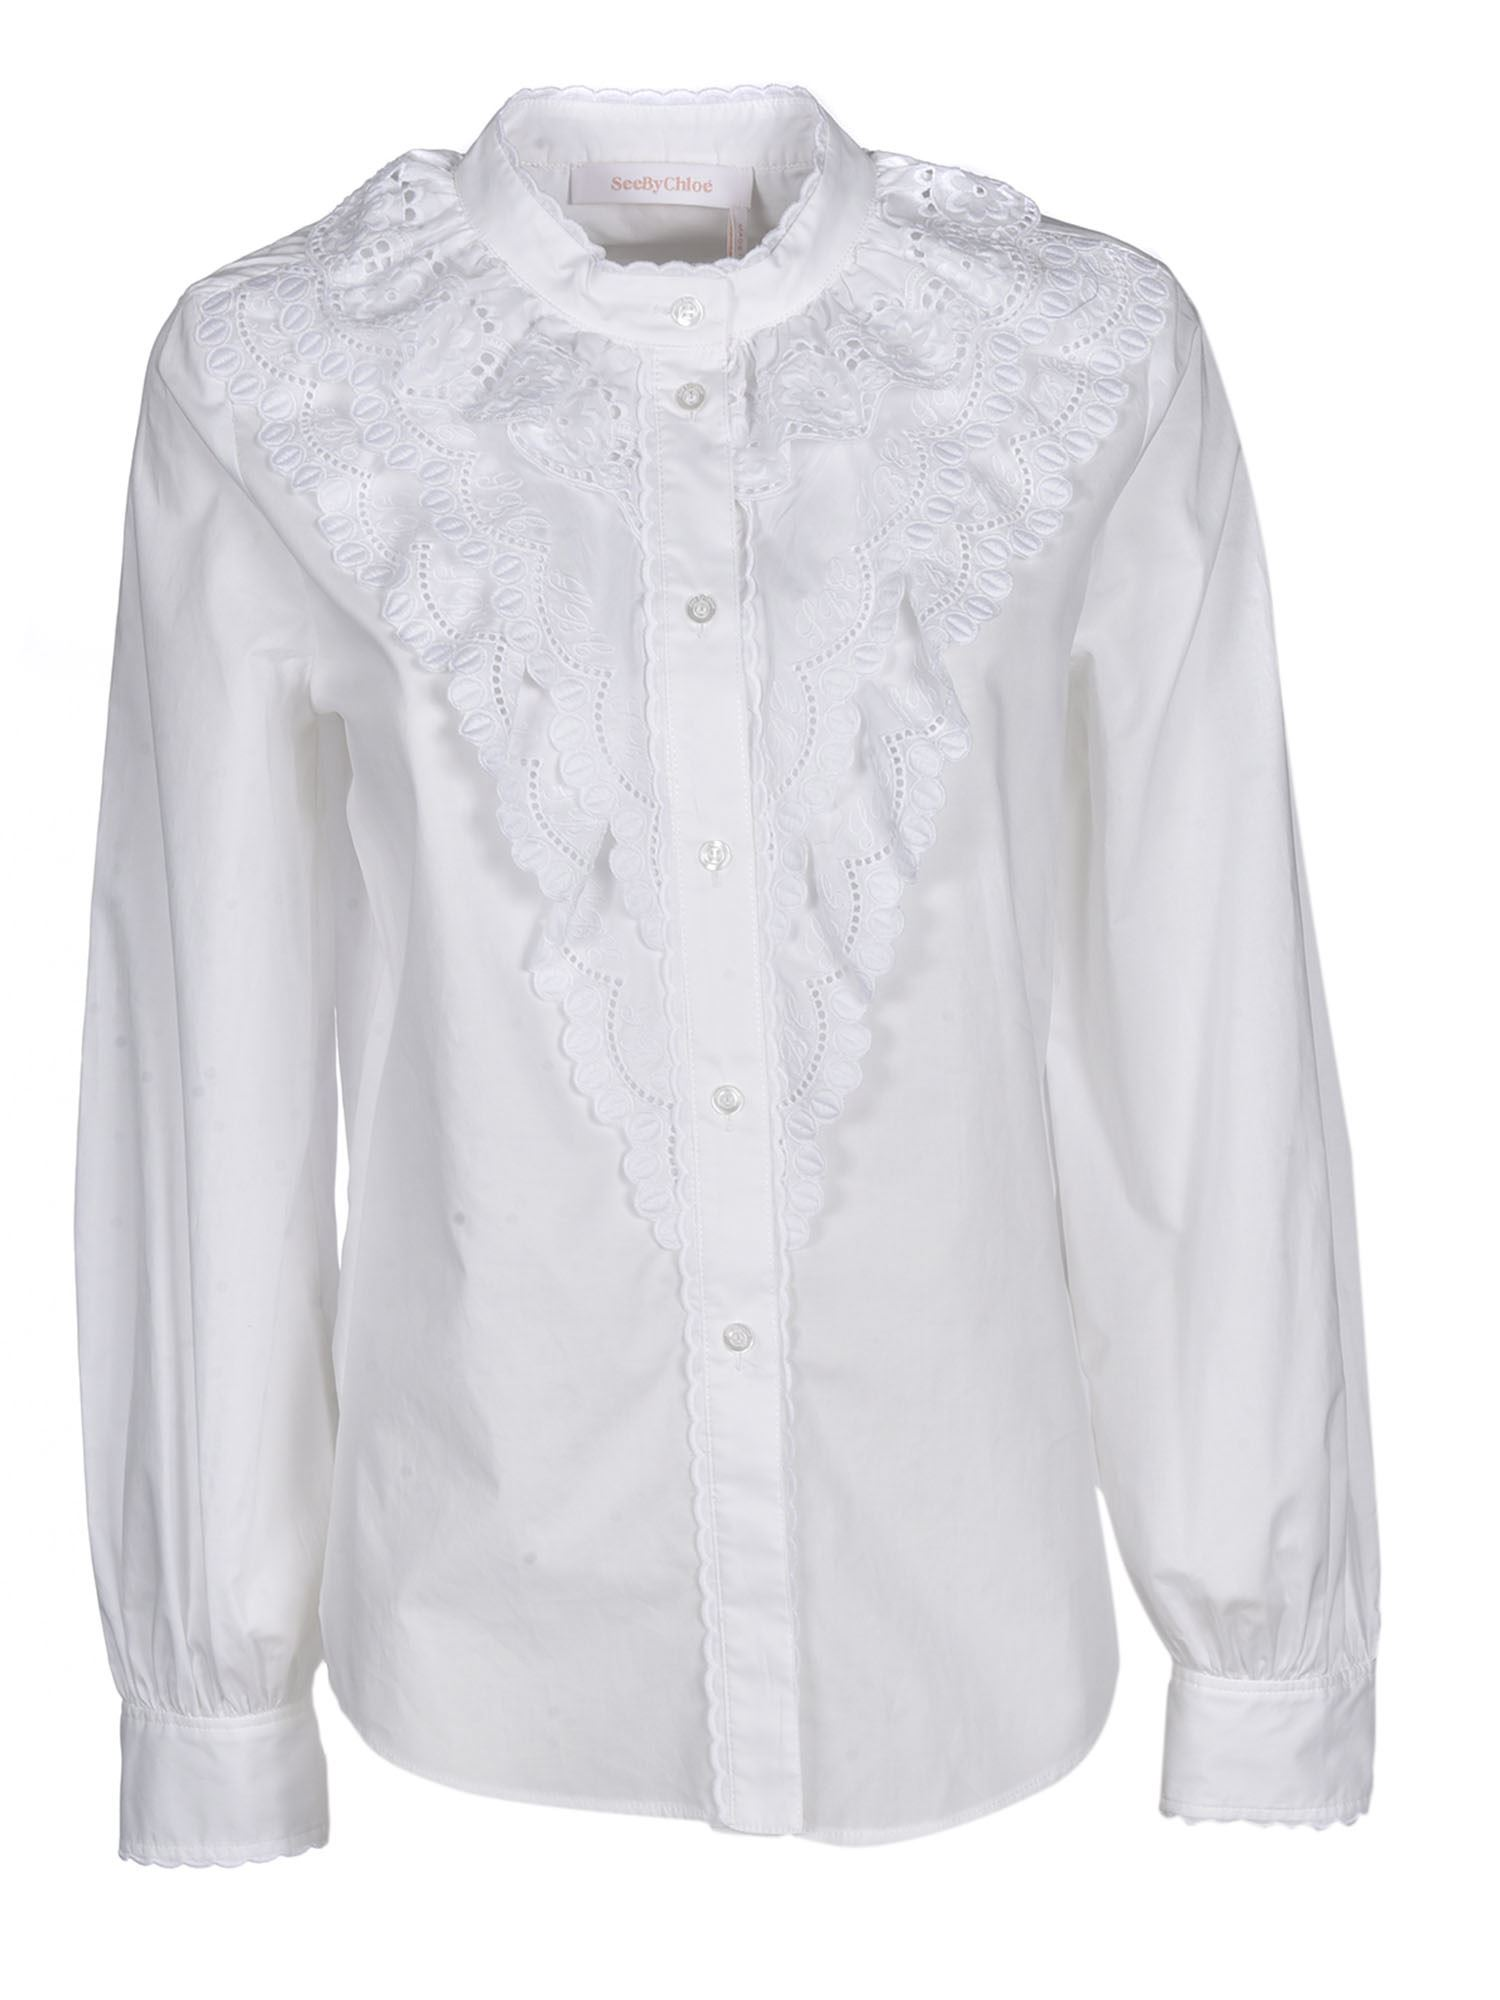 See By Chloé RUFFLE SHIRT IN WHITE